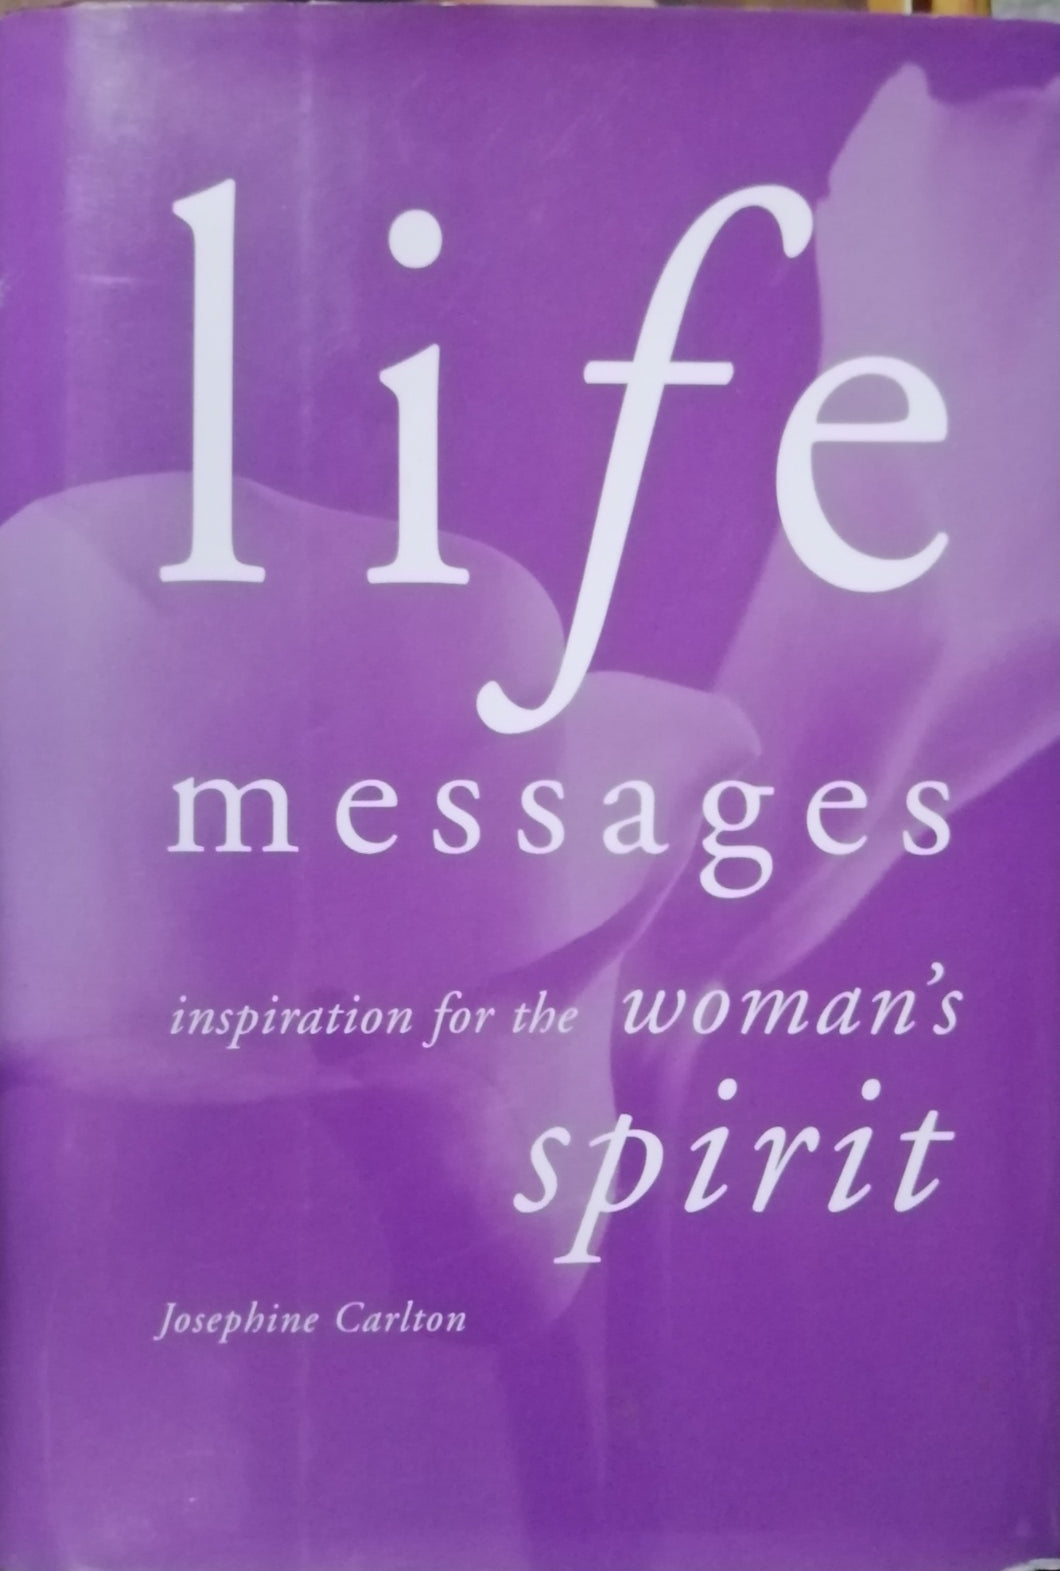 Life messages by Josephine Carlon